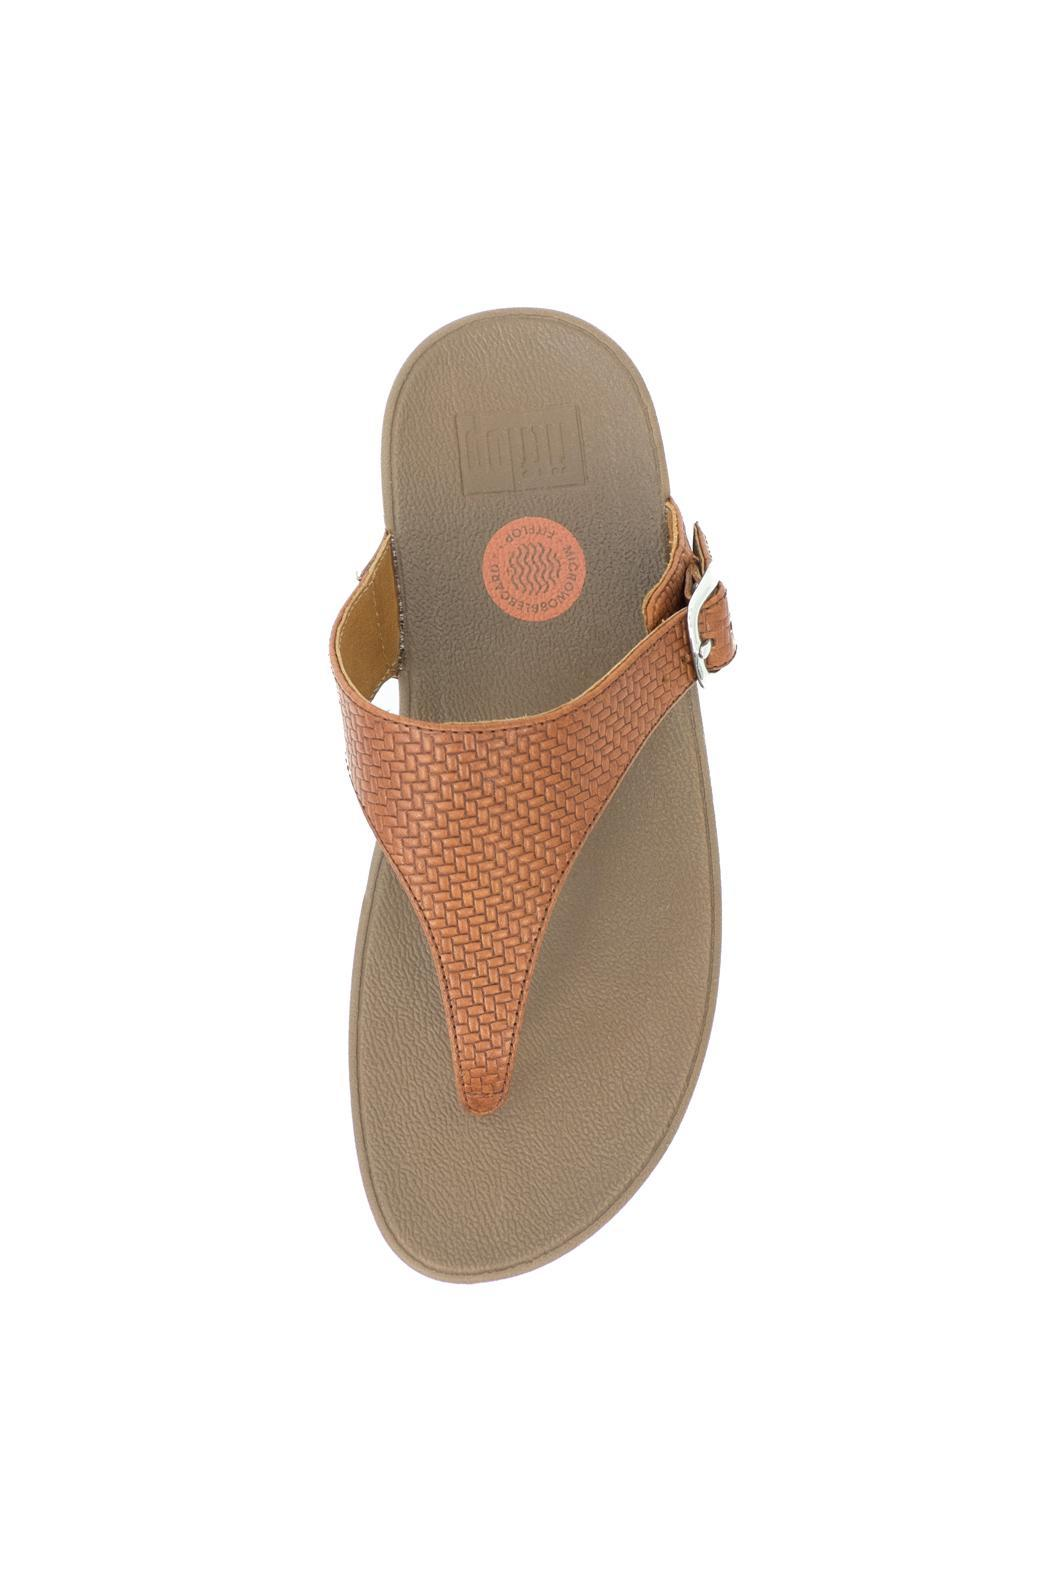 93ba717d2 Fitflop The Skinny Tan Sandal from Canada by Starlet — Shoptiques